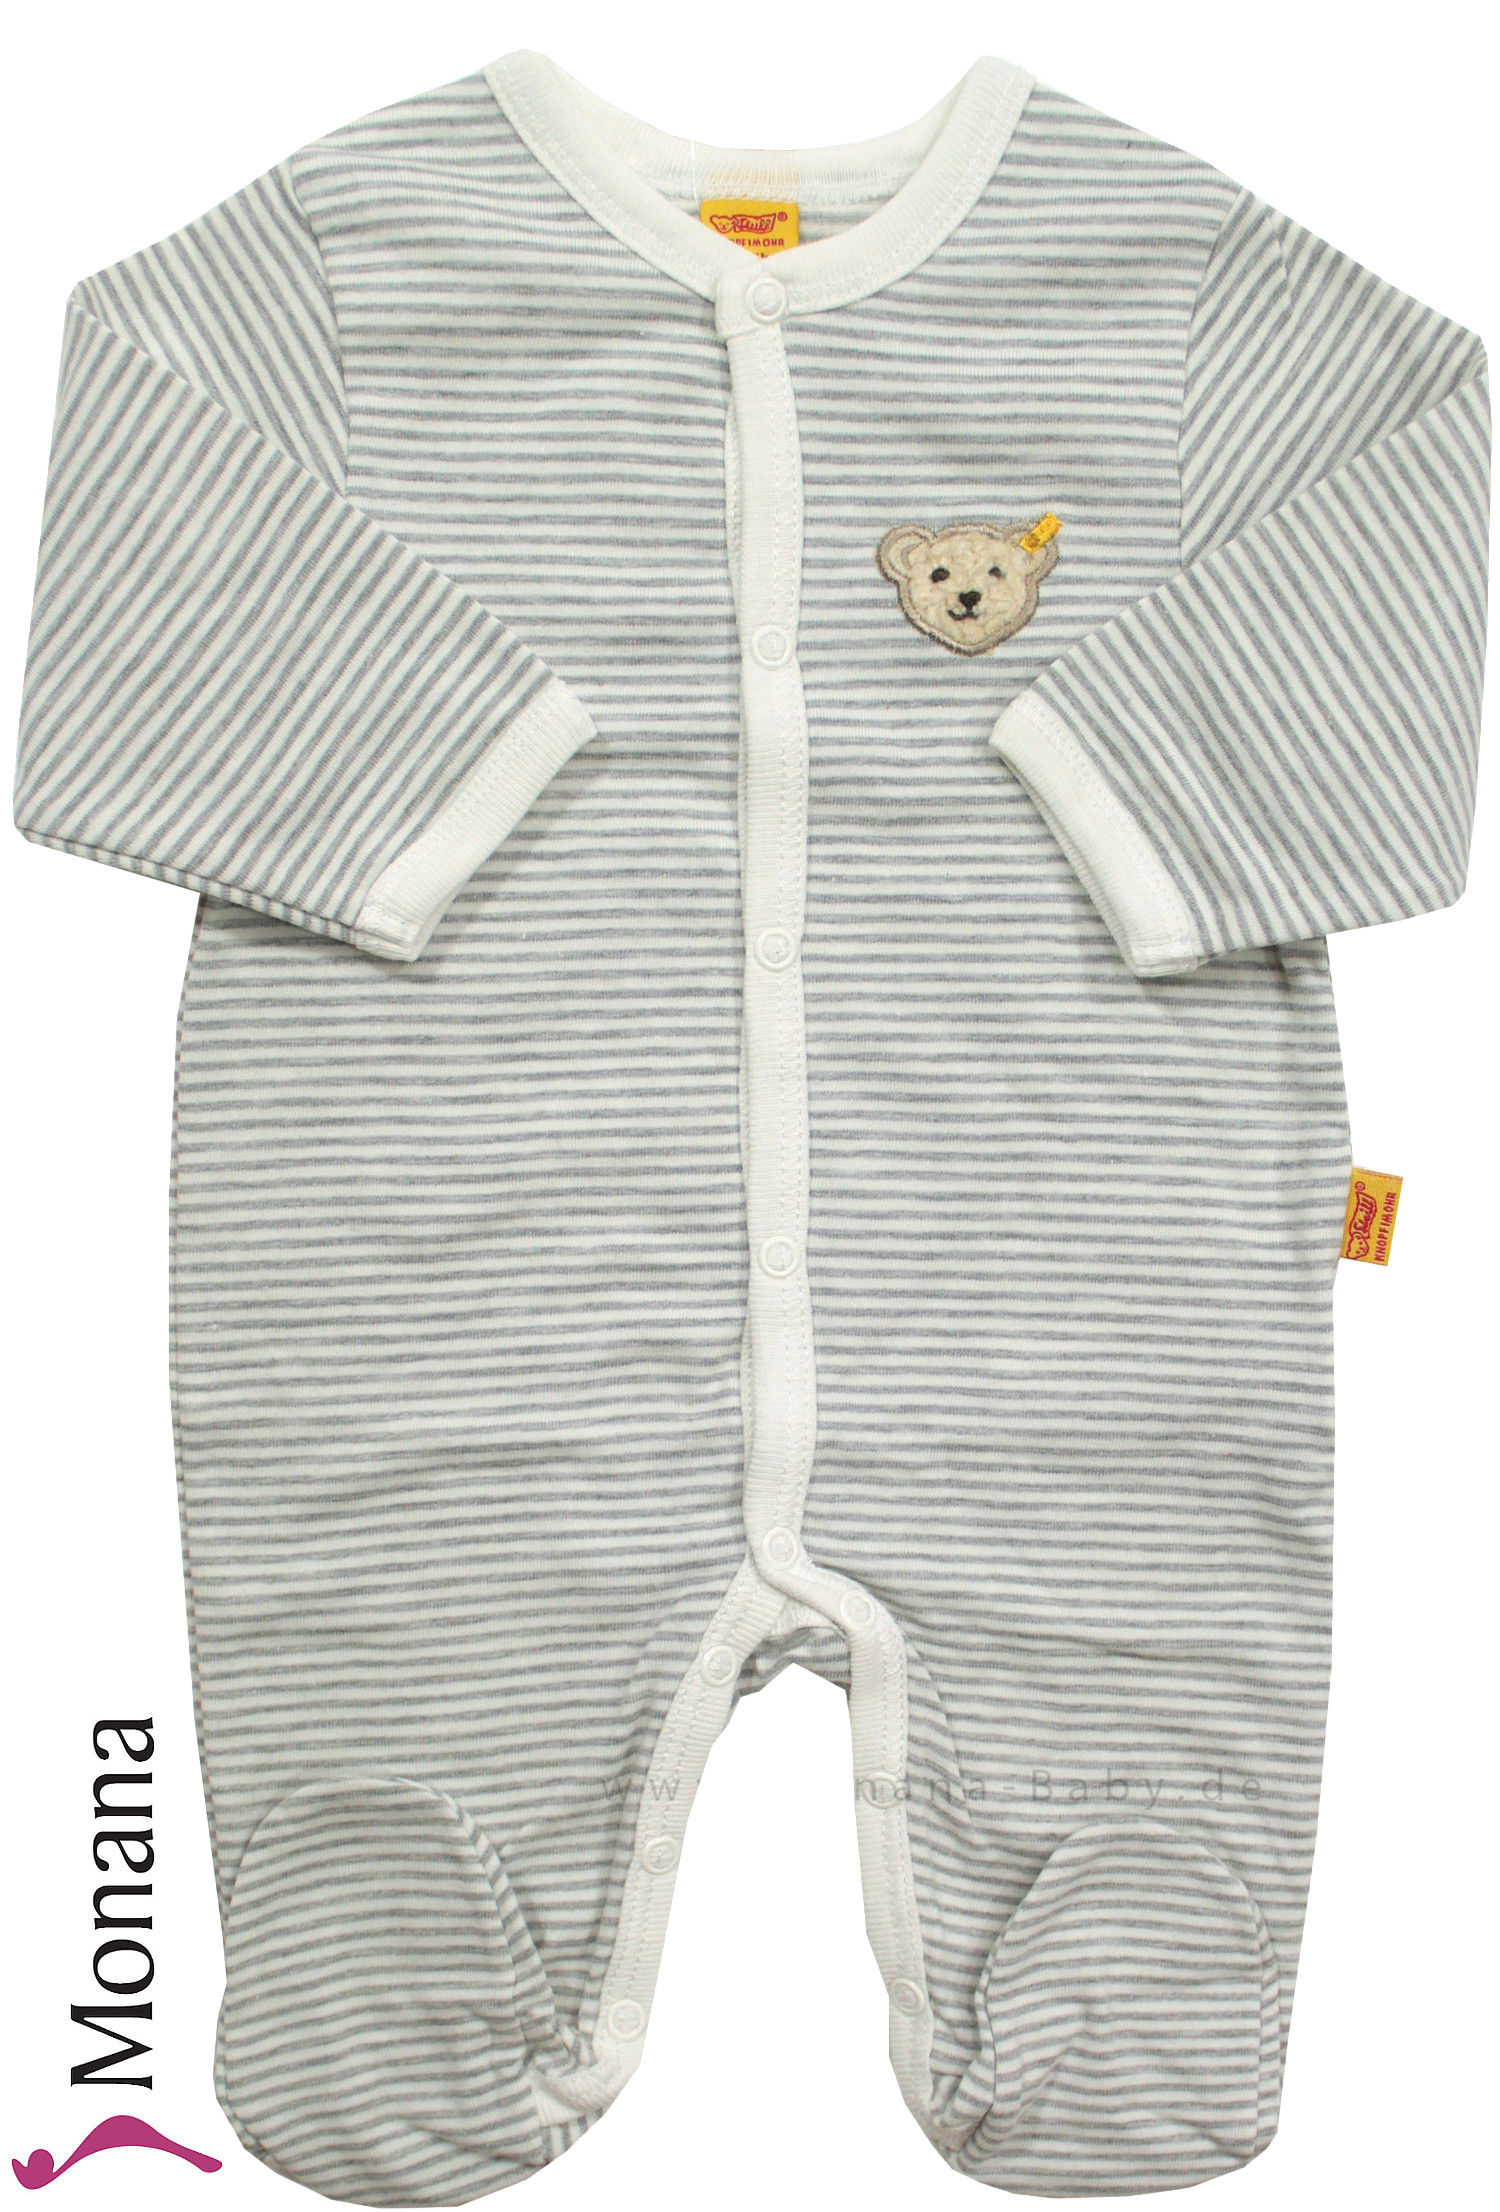 Steiff Collection Baby-Overall grau<br>Größe: 50